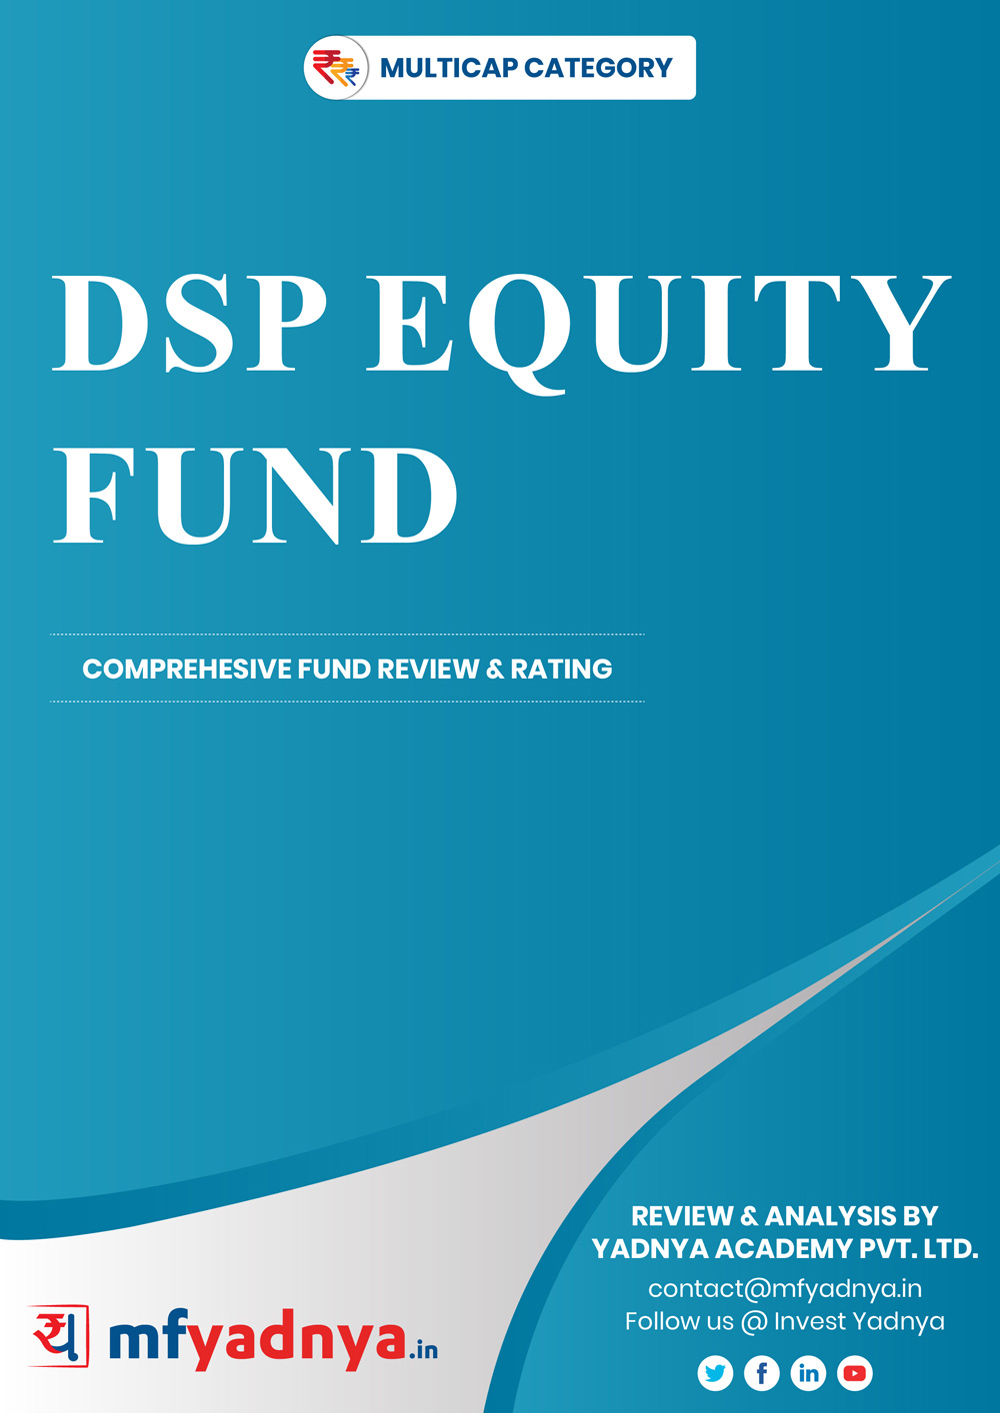 Multi-Cap Category Review - DSP Equity Fund. Most Comprehensive and detailed MF review based on Yadnya's proprietary methodology of Green, Yellow & Red Star. Detailed Analysis & Review based on July 31st, 2019 data.